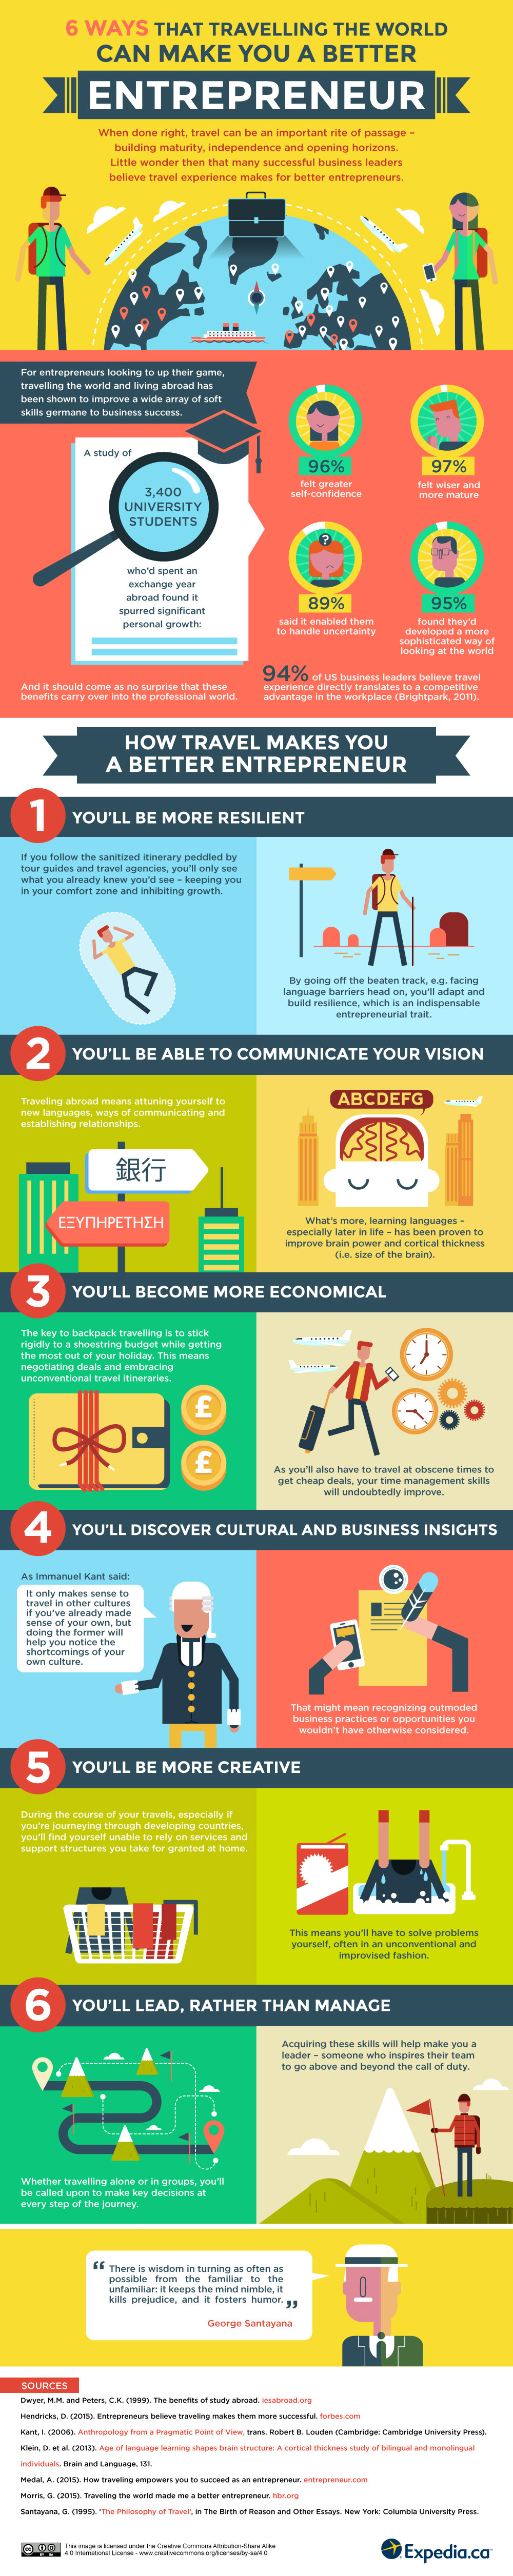 6 Ways Travelling Will Make You A Better Entrepreneur [Infographic]